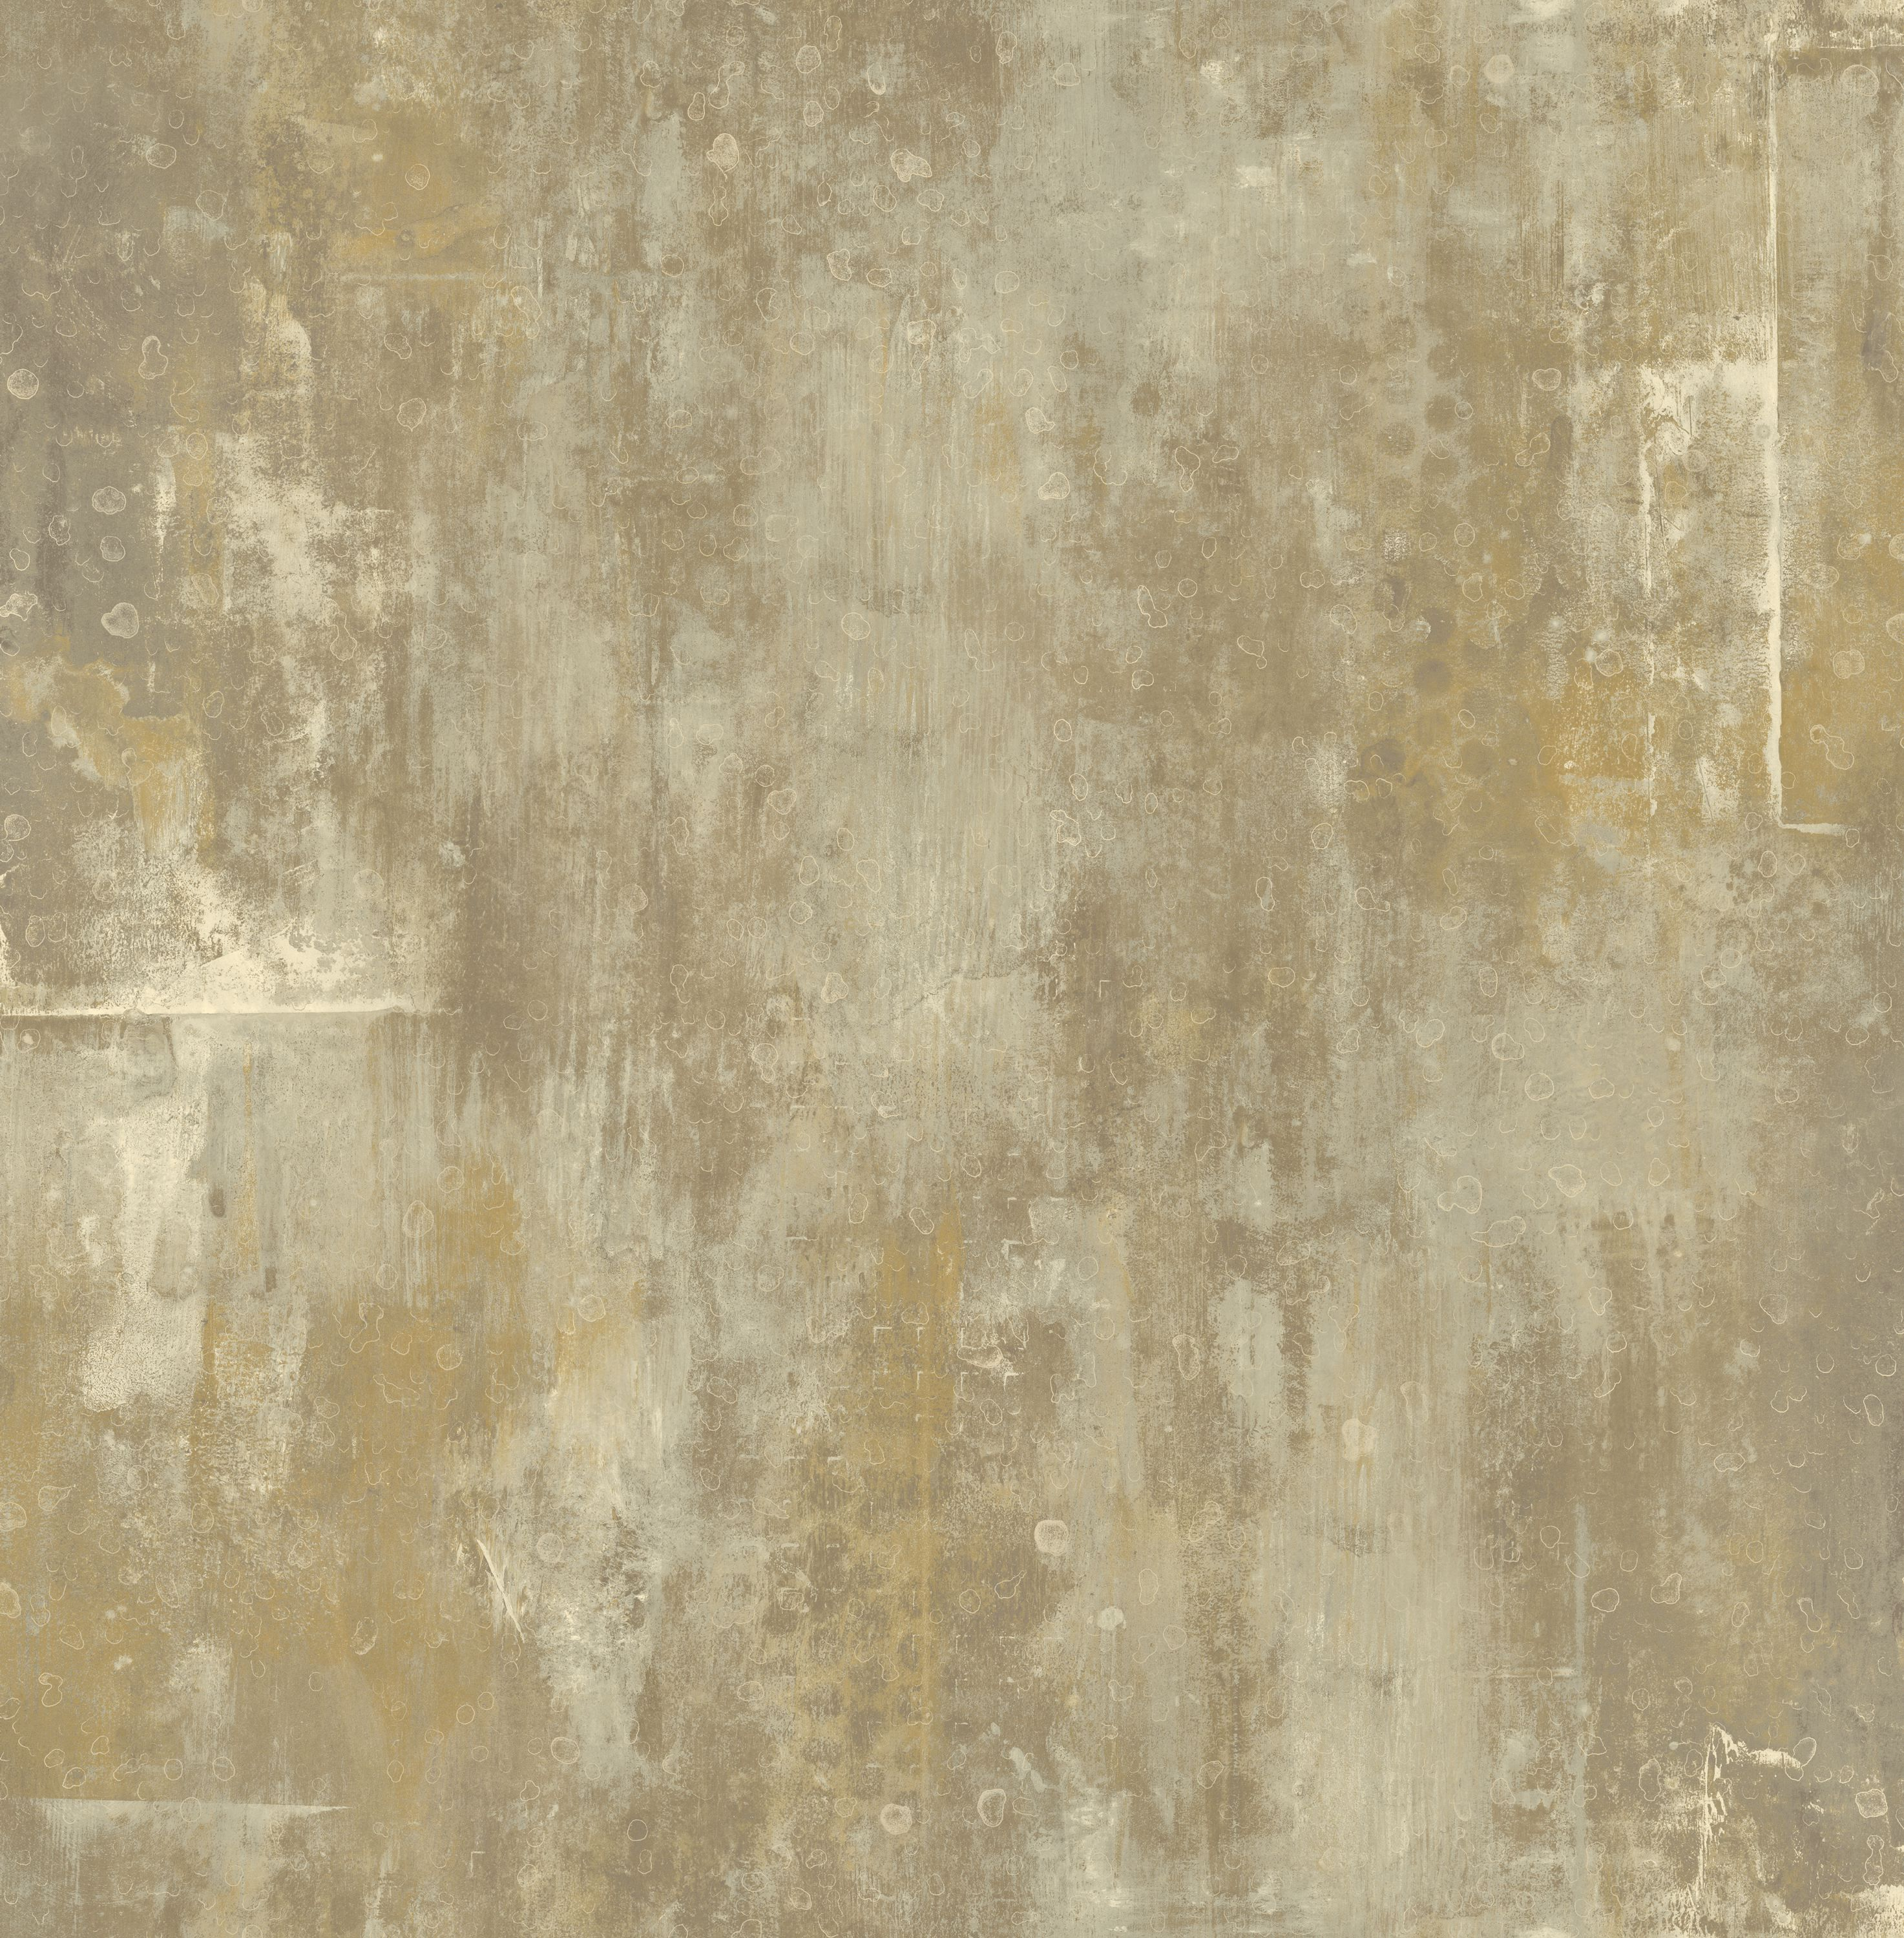 Wall painting effects - Fontaine S Contemporary Faux Effect Wallpaper Fax 38906 Faux Effects Wall Paper Designerwallcoverings